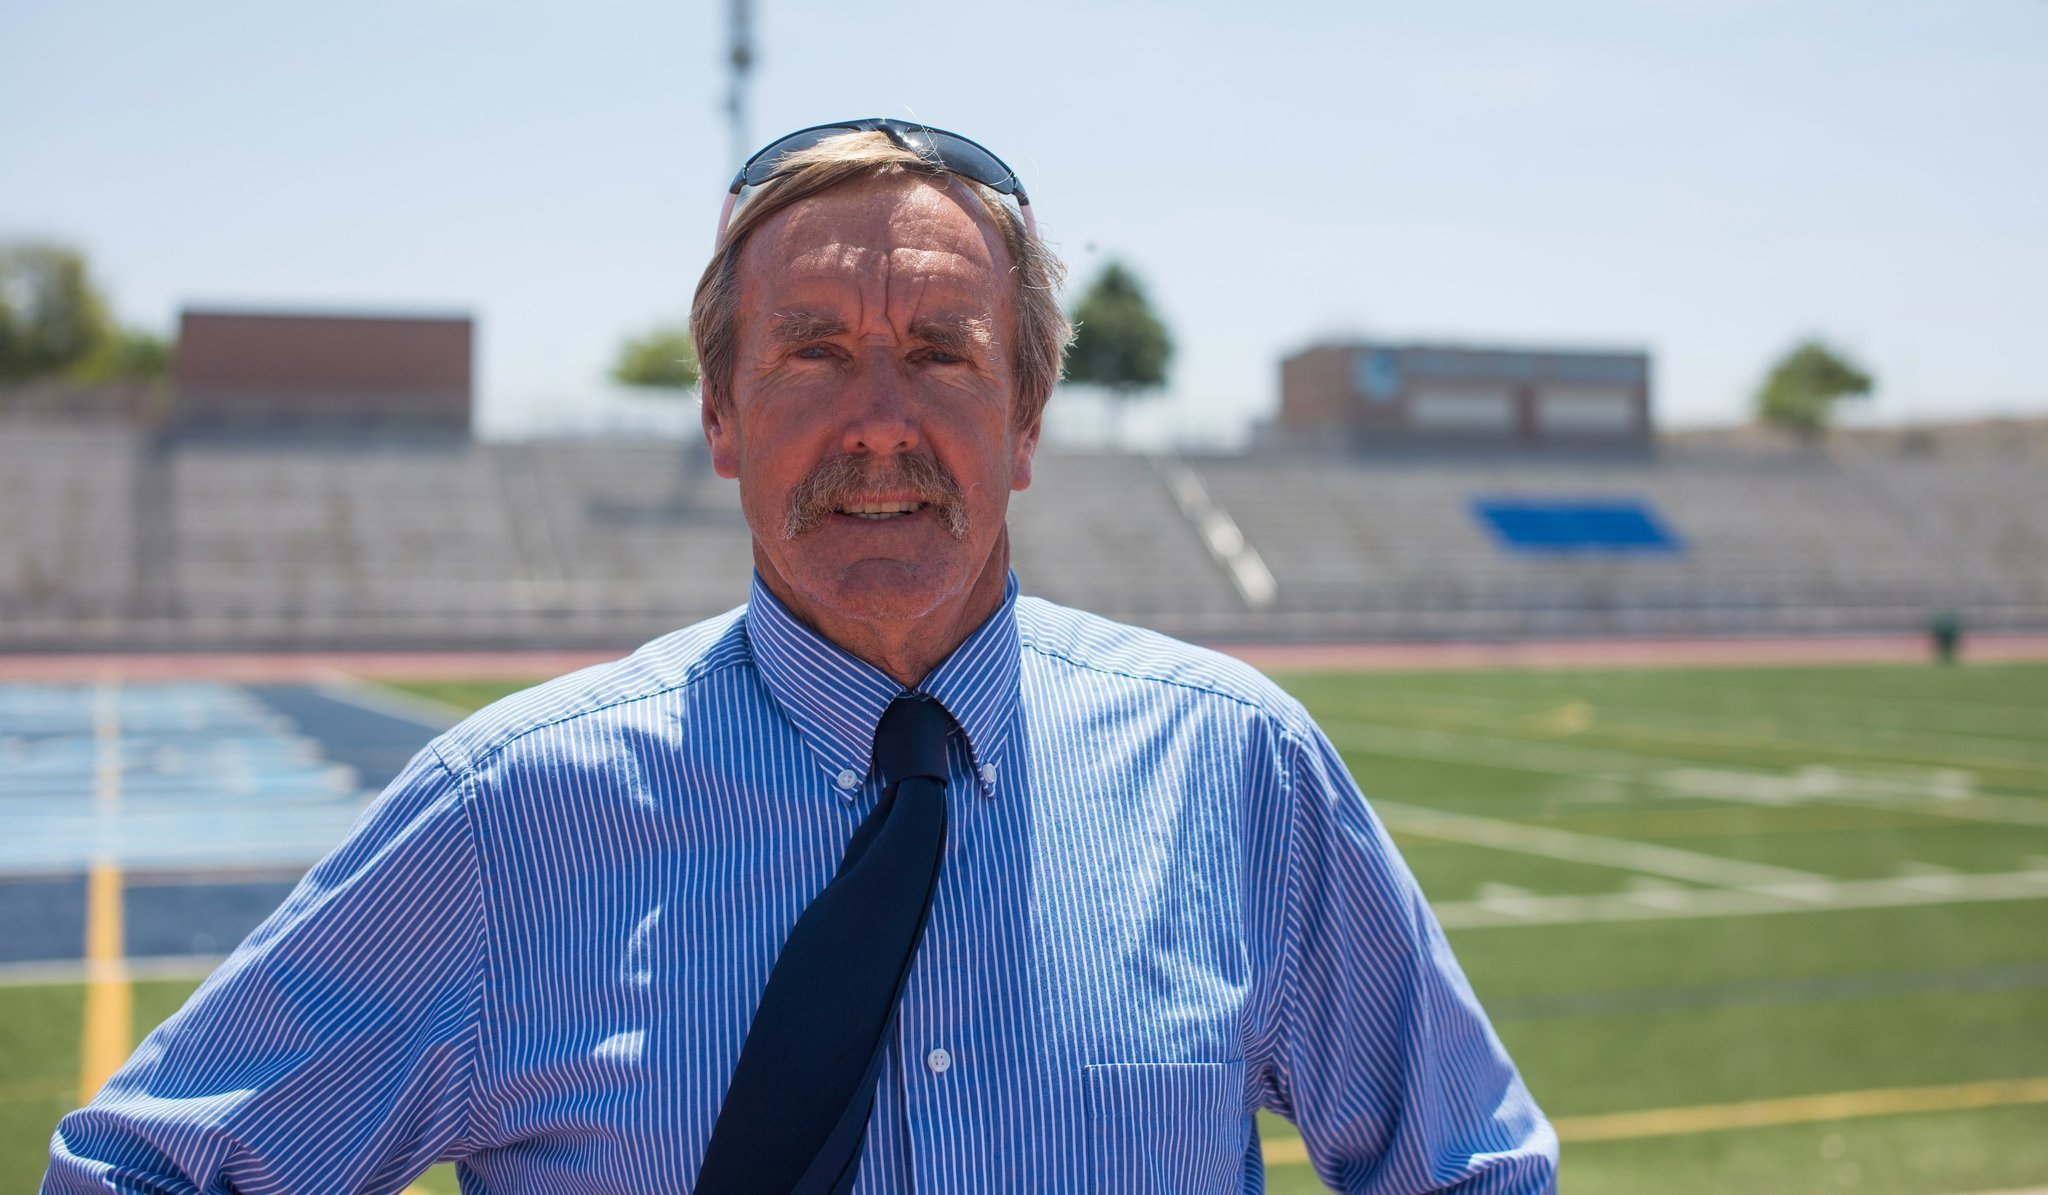 Running coach student mentor moving on  The San Diego UnionTribune